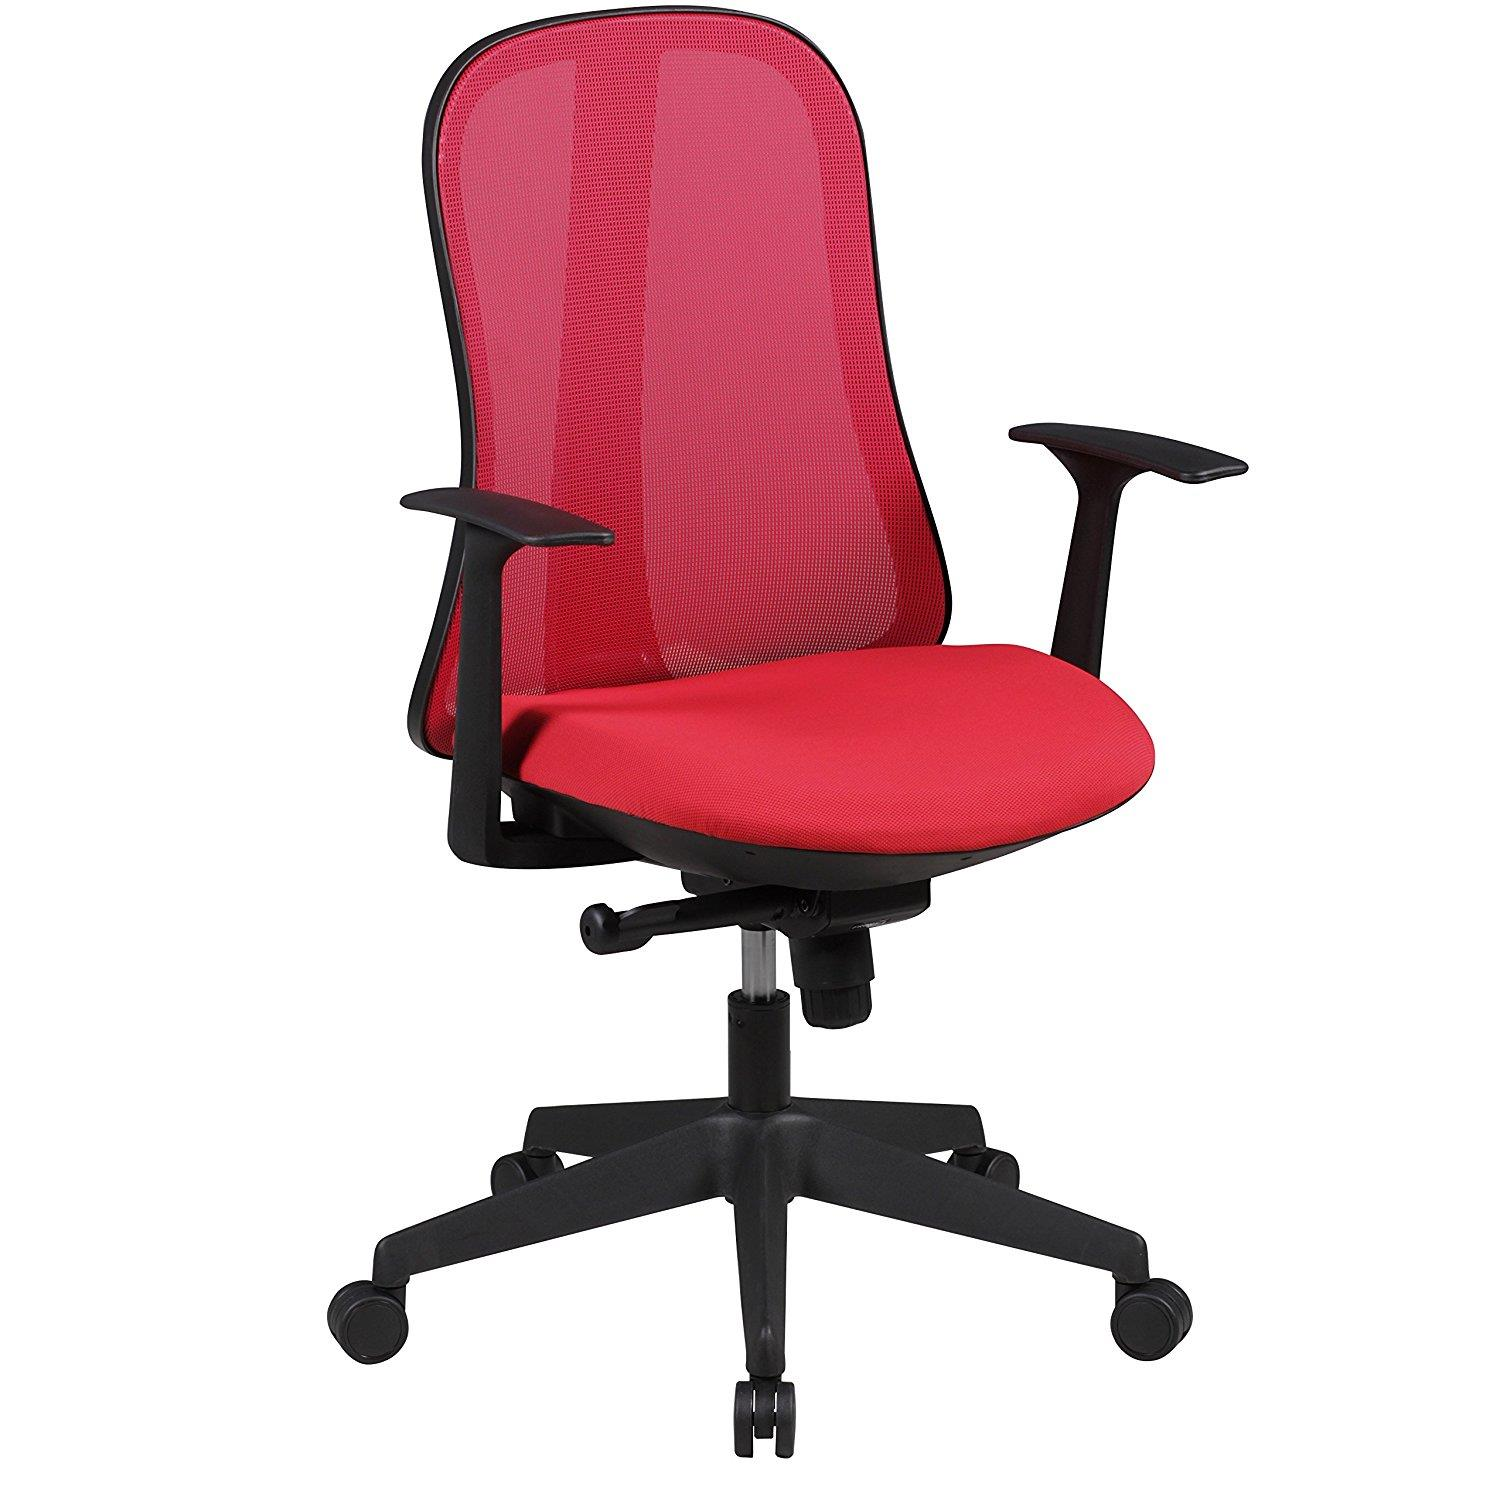 Silla Ergonómica MIRTA, Mecanismo Sincronizado, en Malla Transpirable color Rojo